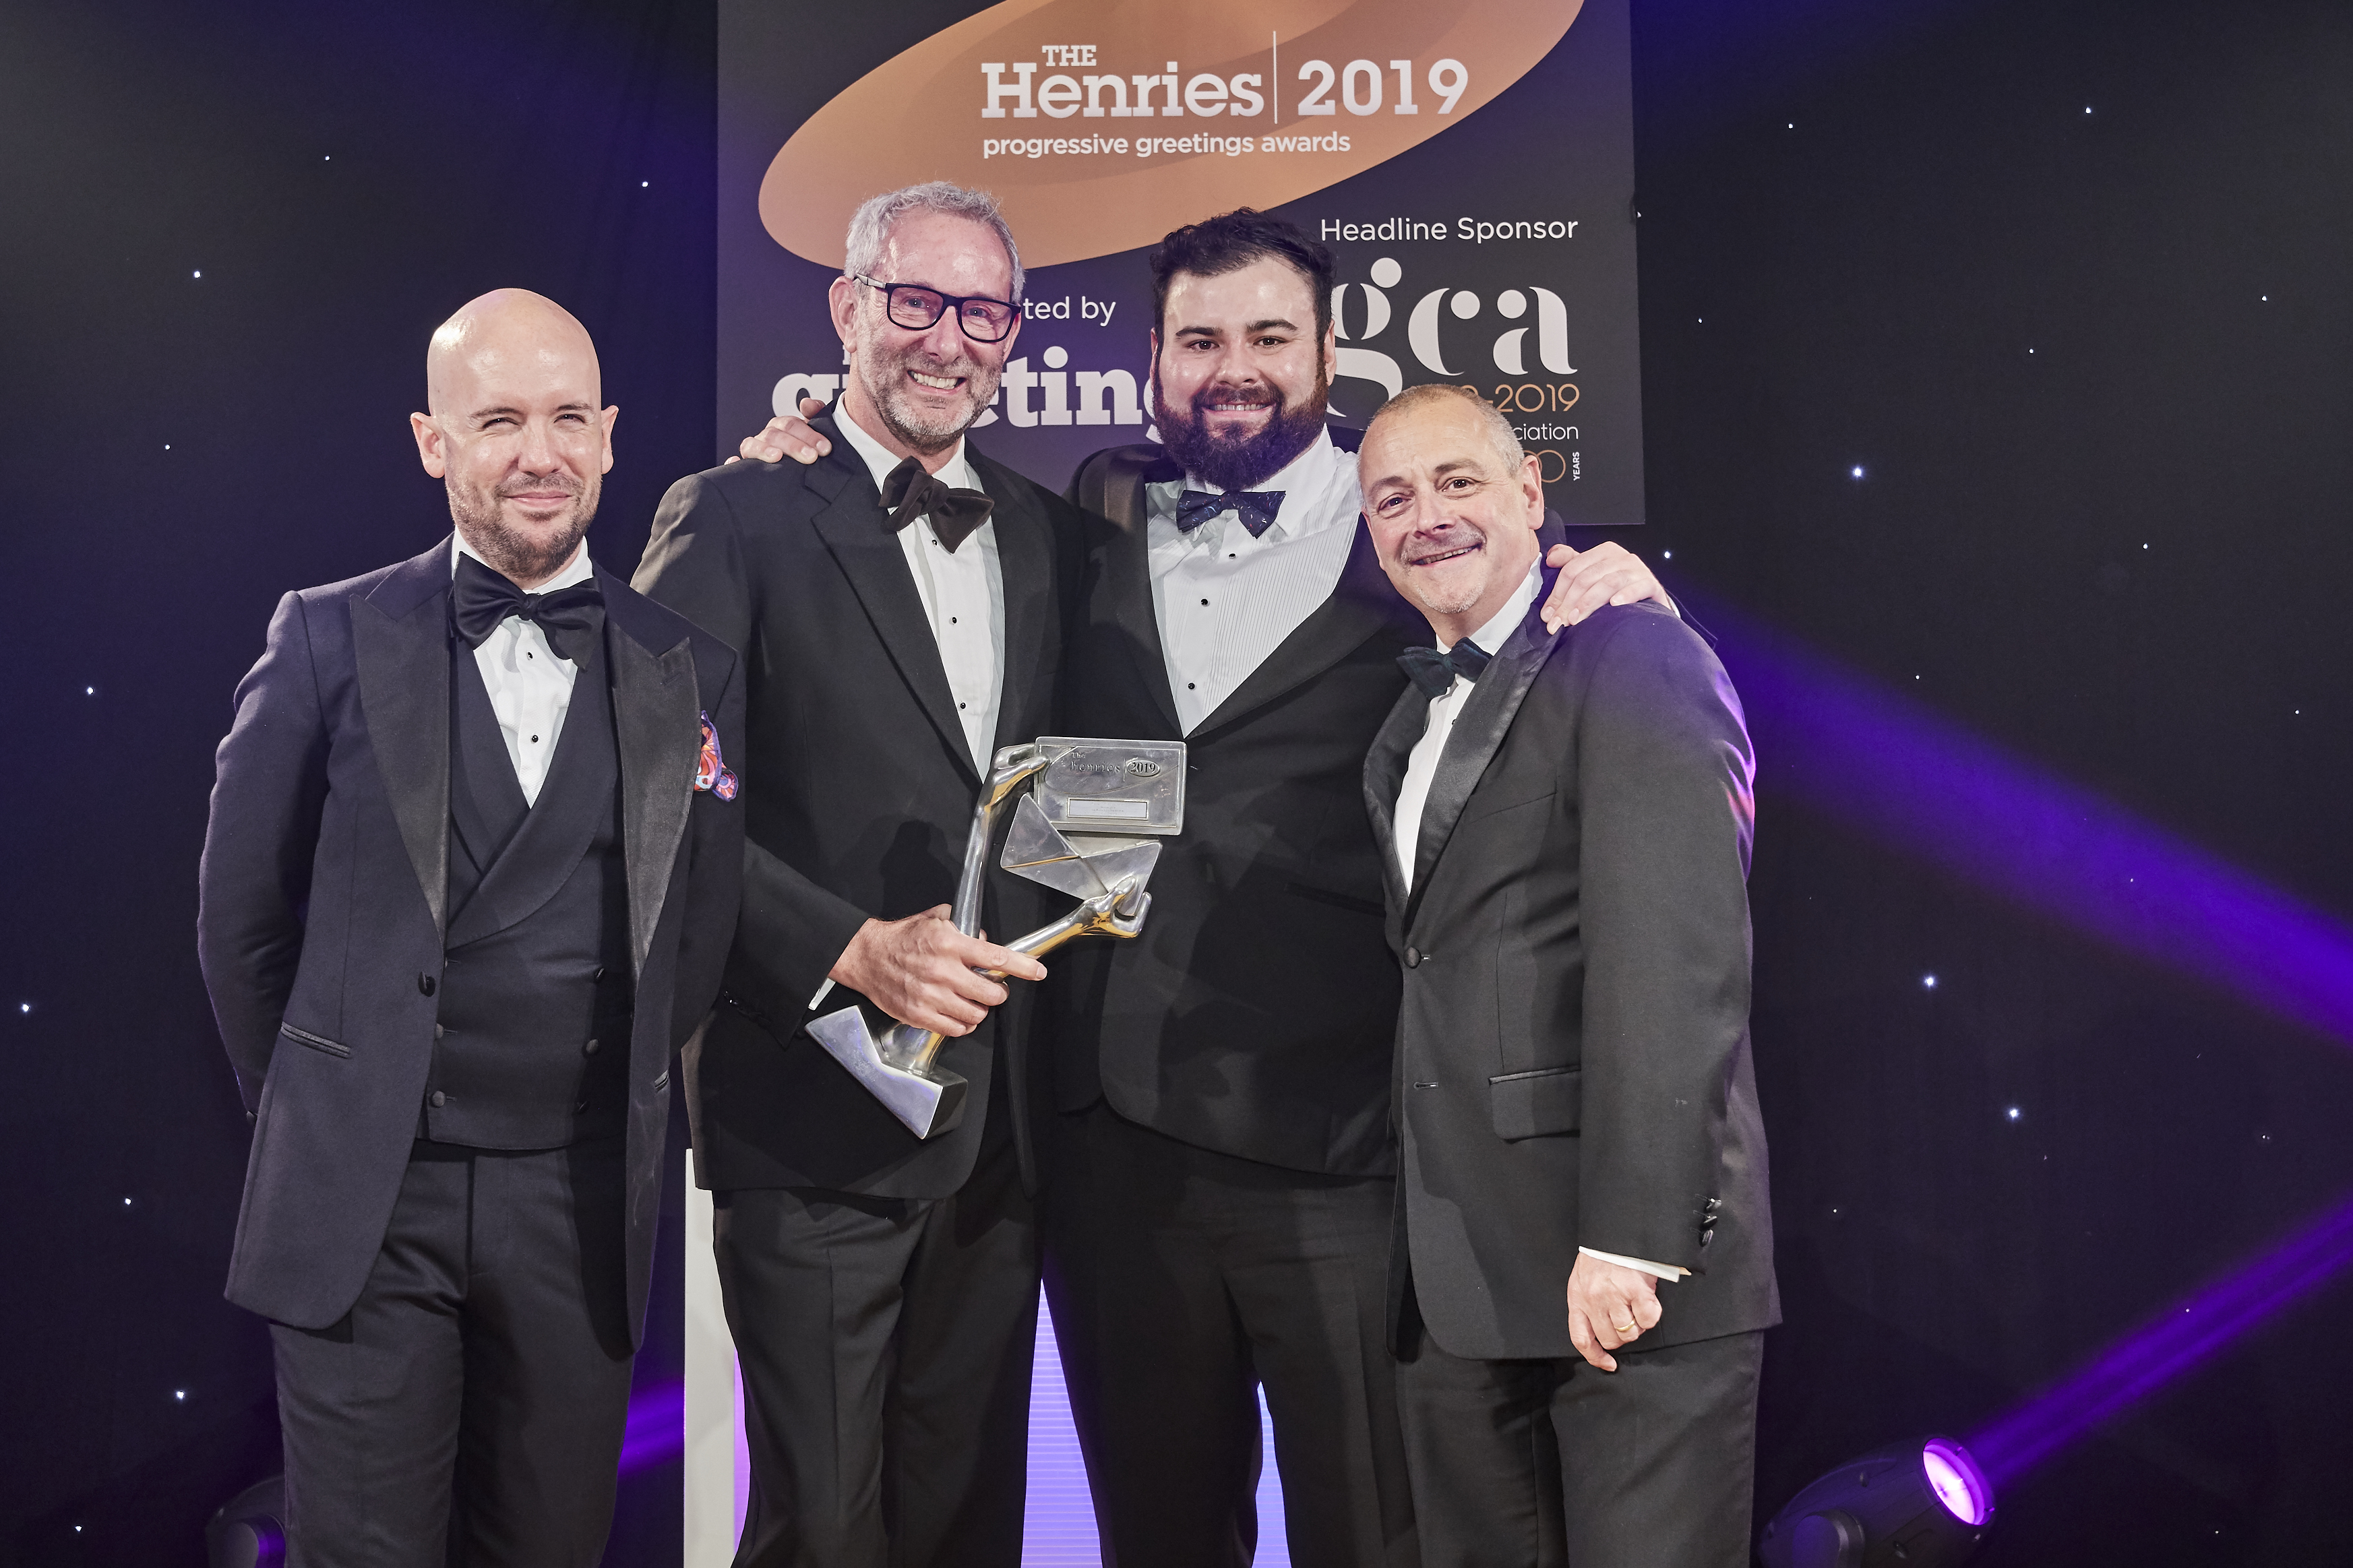 Above: The Art File's managing director, Ged Mace (second left) and sales & marketing manager James Mace (second right) were delighted to be presented with the trophy by Jeremy Bacon, ceo of category sponsor, The Sherwood Group.